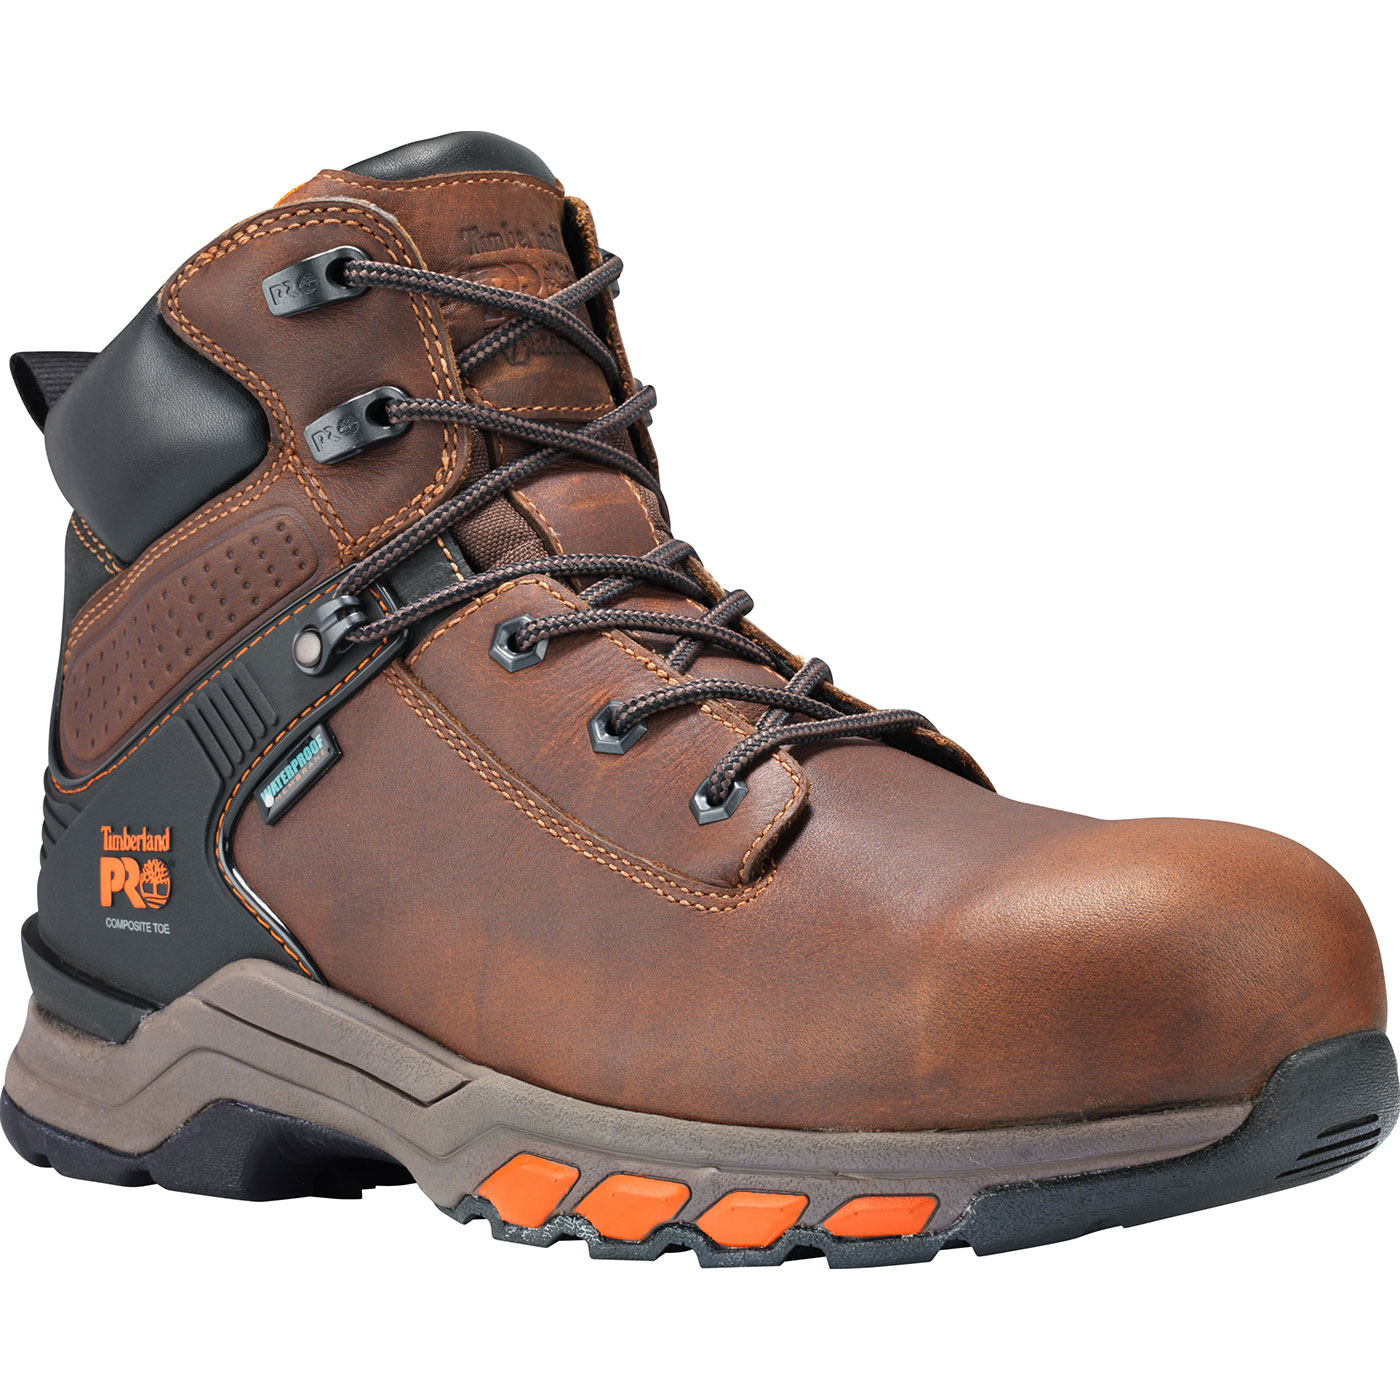 0d11adb731f Timberland PRO Hypercharge Men's 6 inch Composite Toe Electrical Hazard  Waterproof Leather Work Hiker